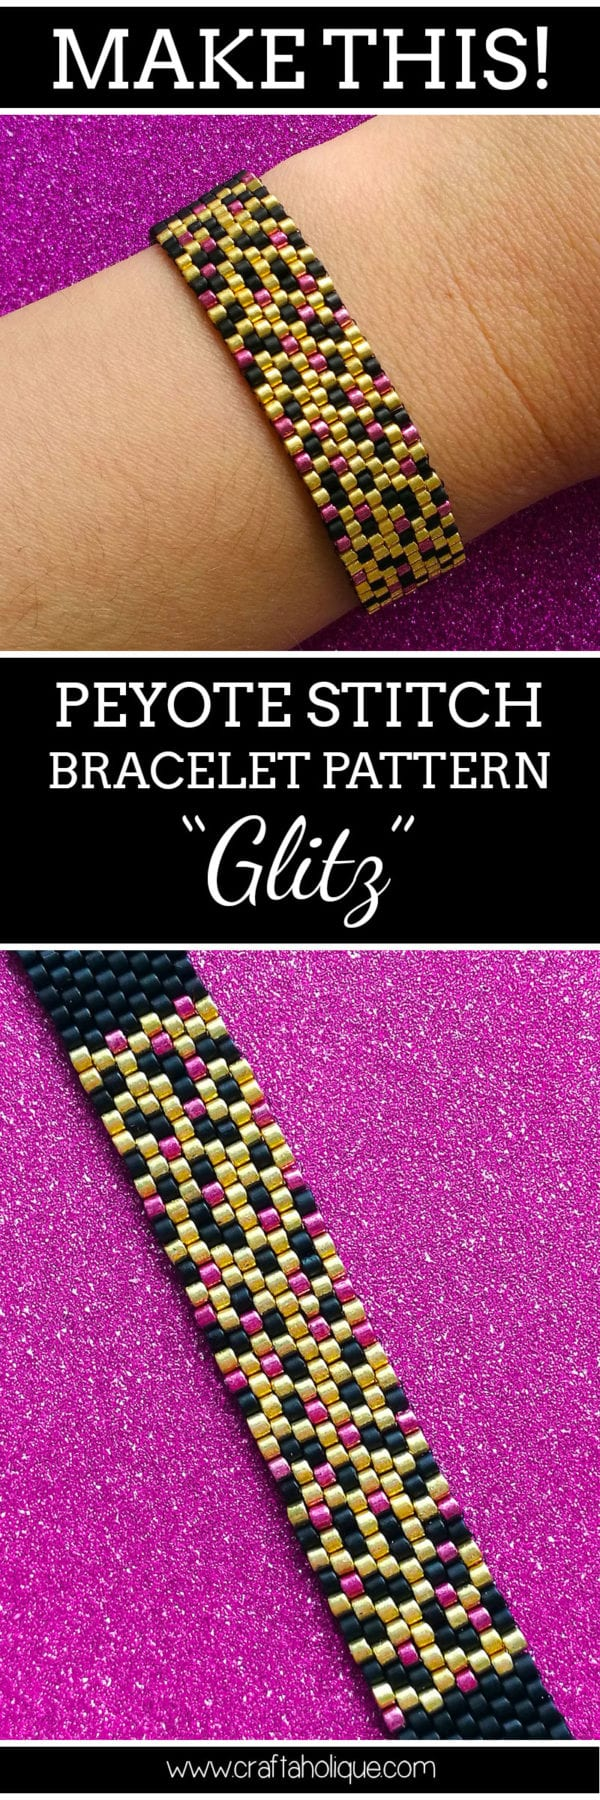 Peyote for Beginners - Glitz Peyote Stitch Bracelet Pattern by Craftaholique